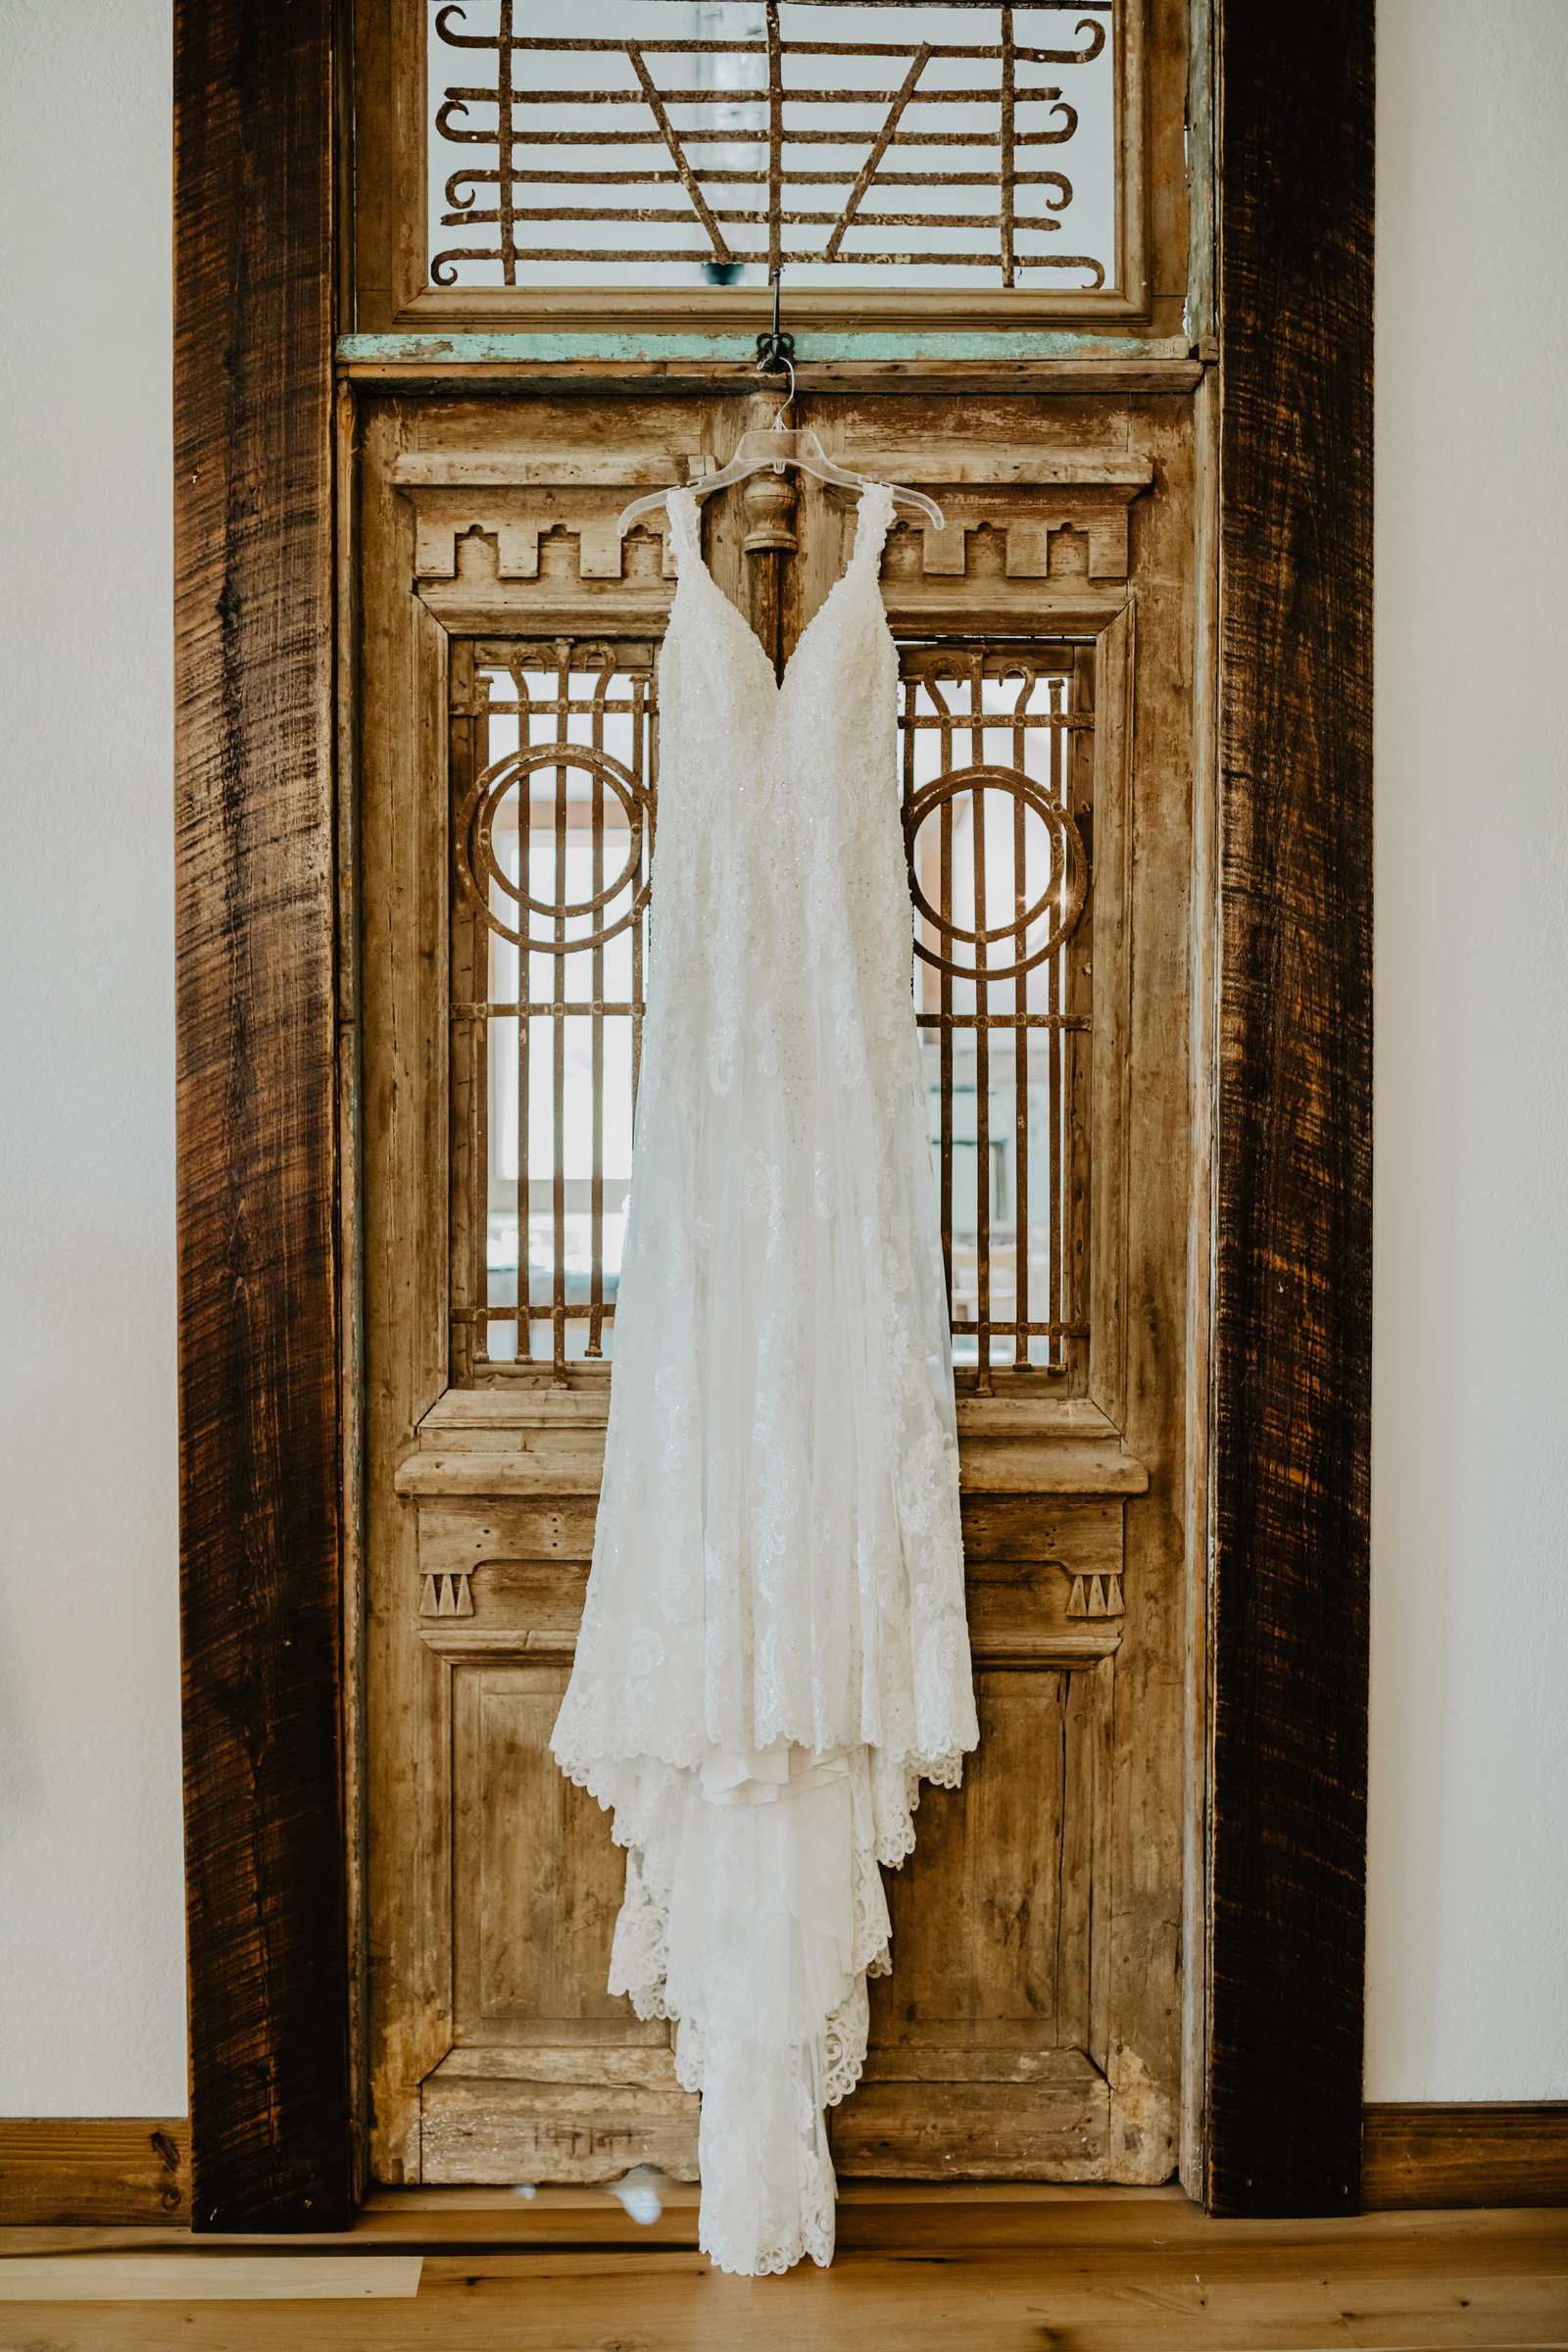 With European details Cason's Cove was a perfect match to hang this brides dress in front of.